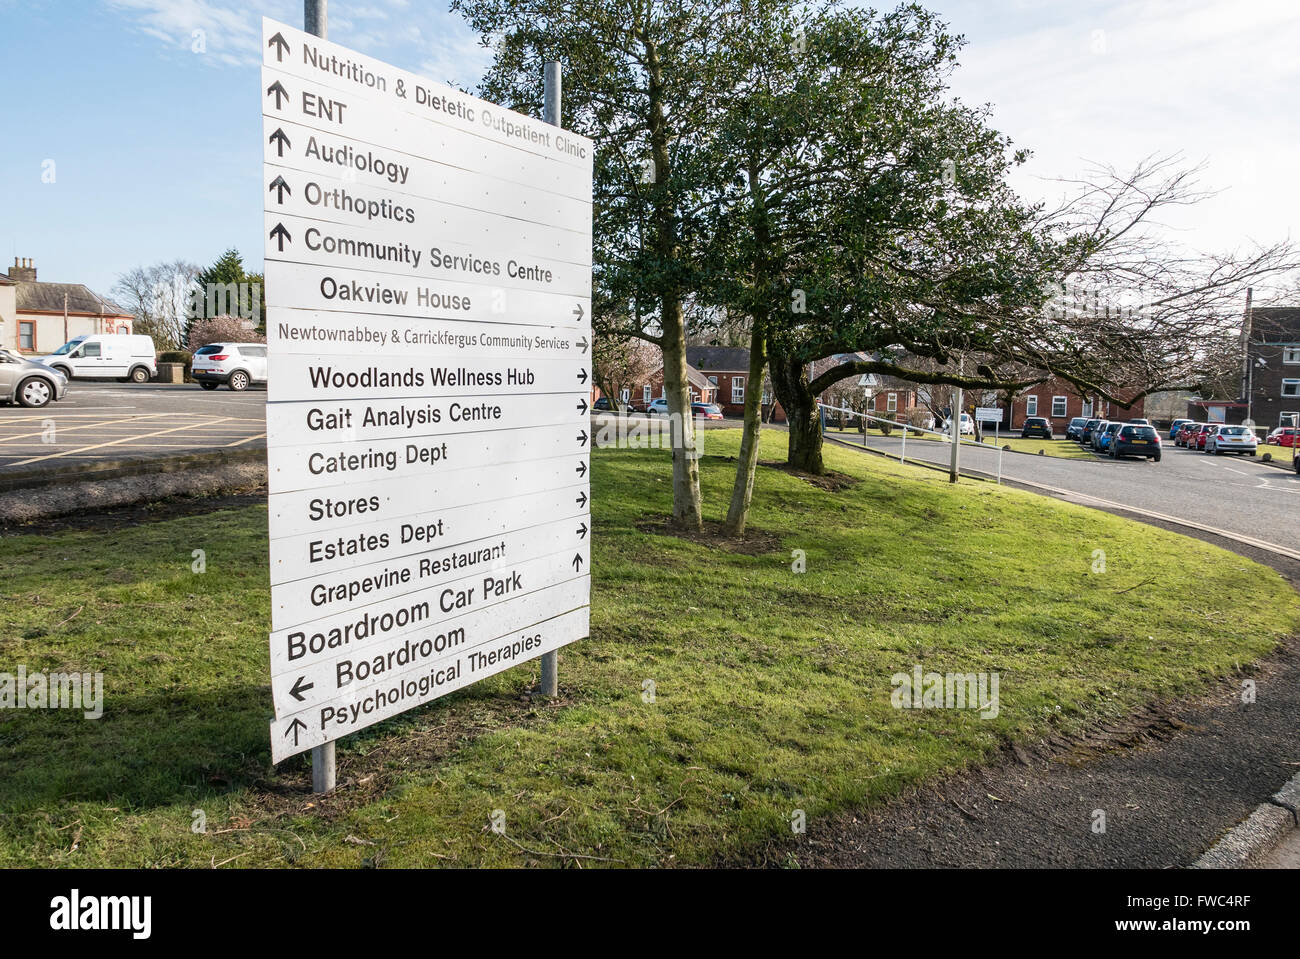 Sign at a hospital giving directions to various wards, services, departments and restaurants. - Stock Image